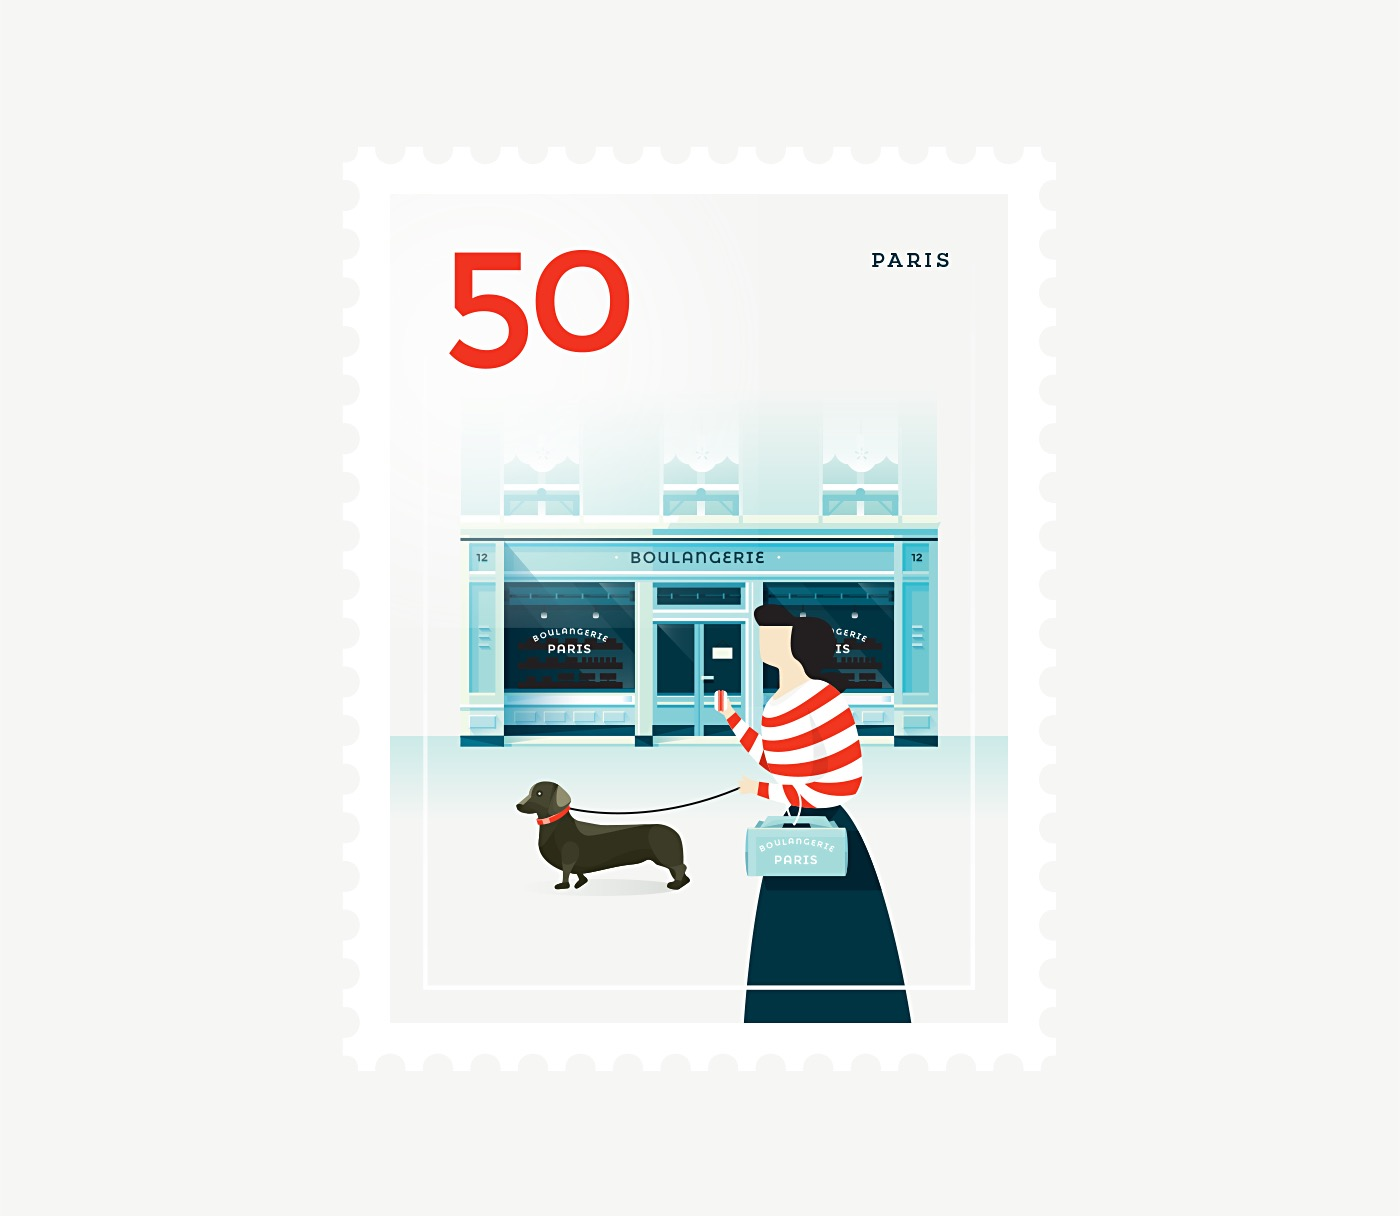 Minimalists Illustrated Stamps of Iconic Cities (9 pics)